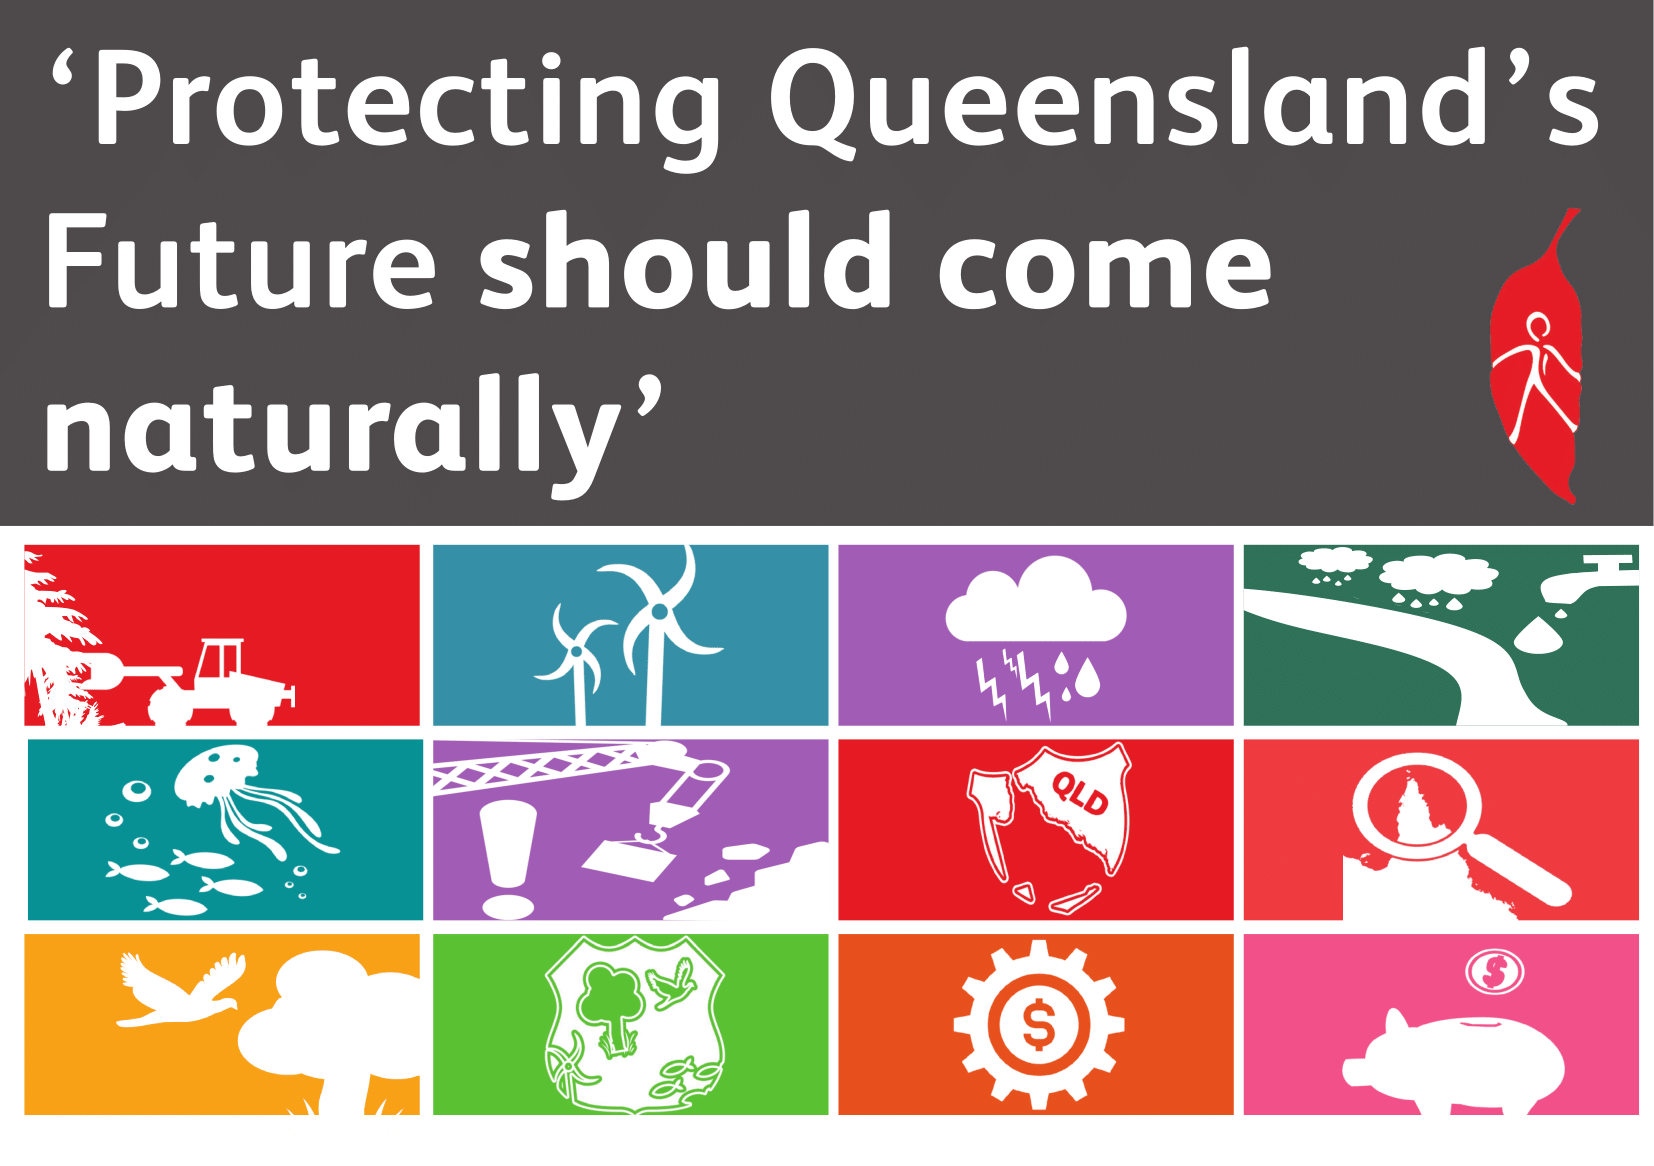 Protecting Queensland's Future Should Come Naturally